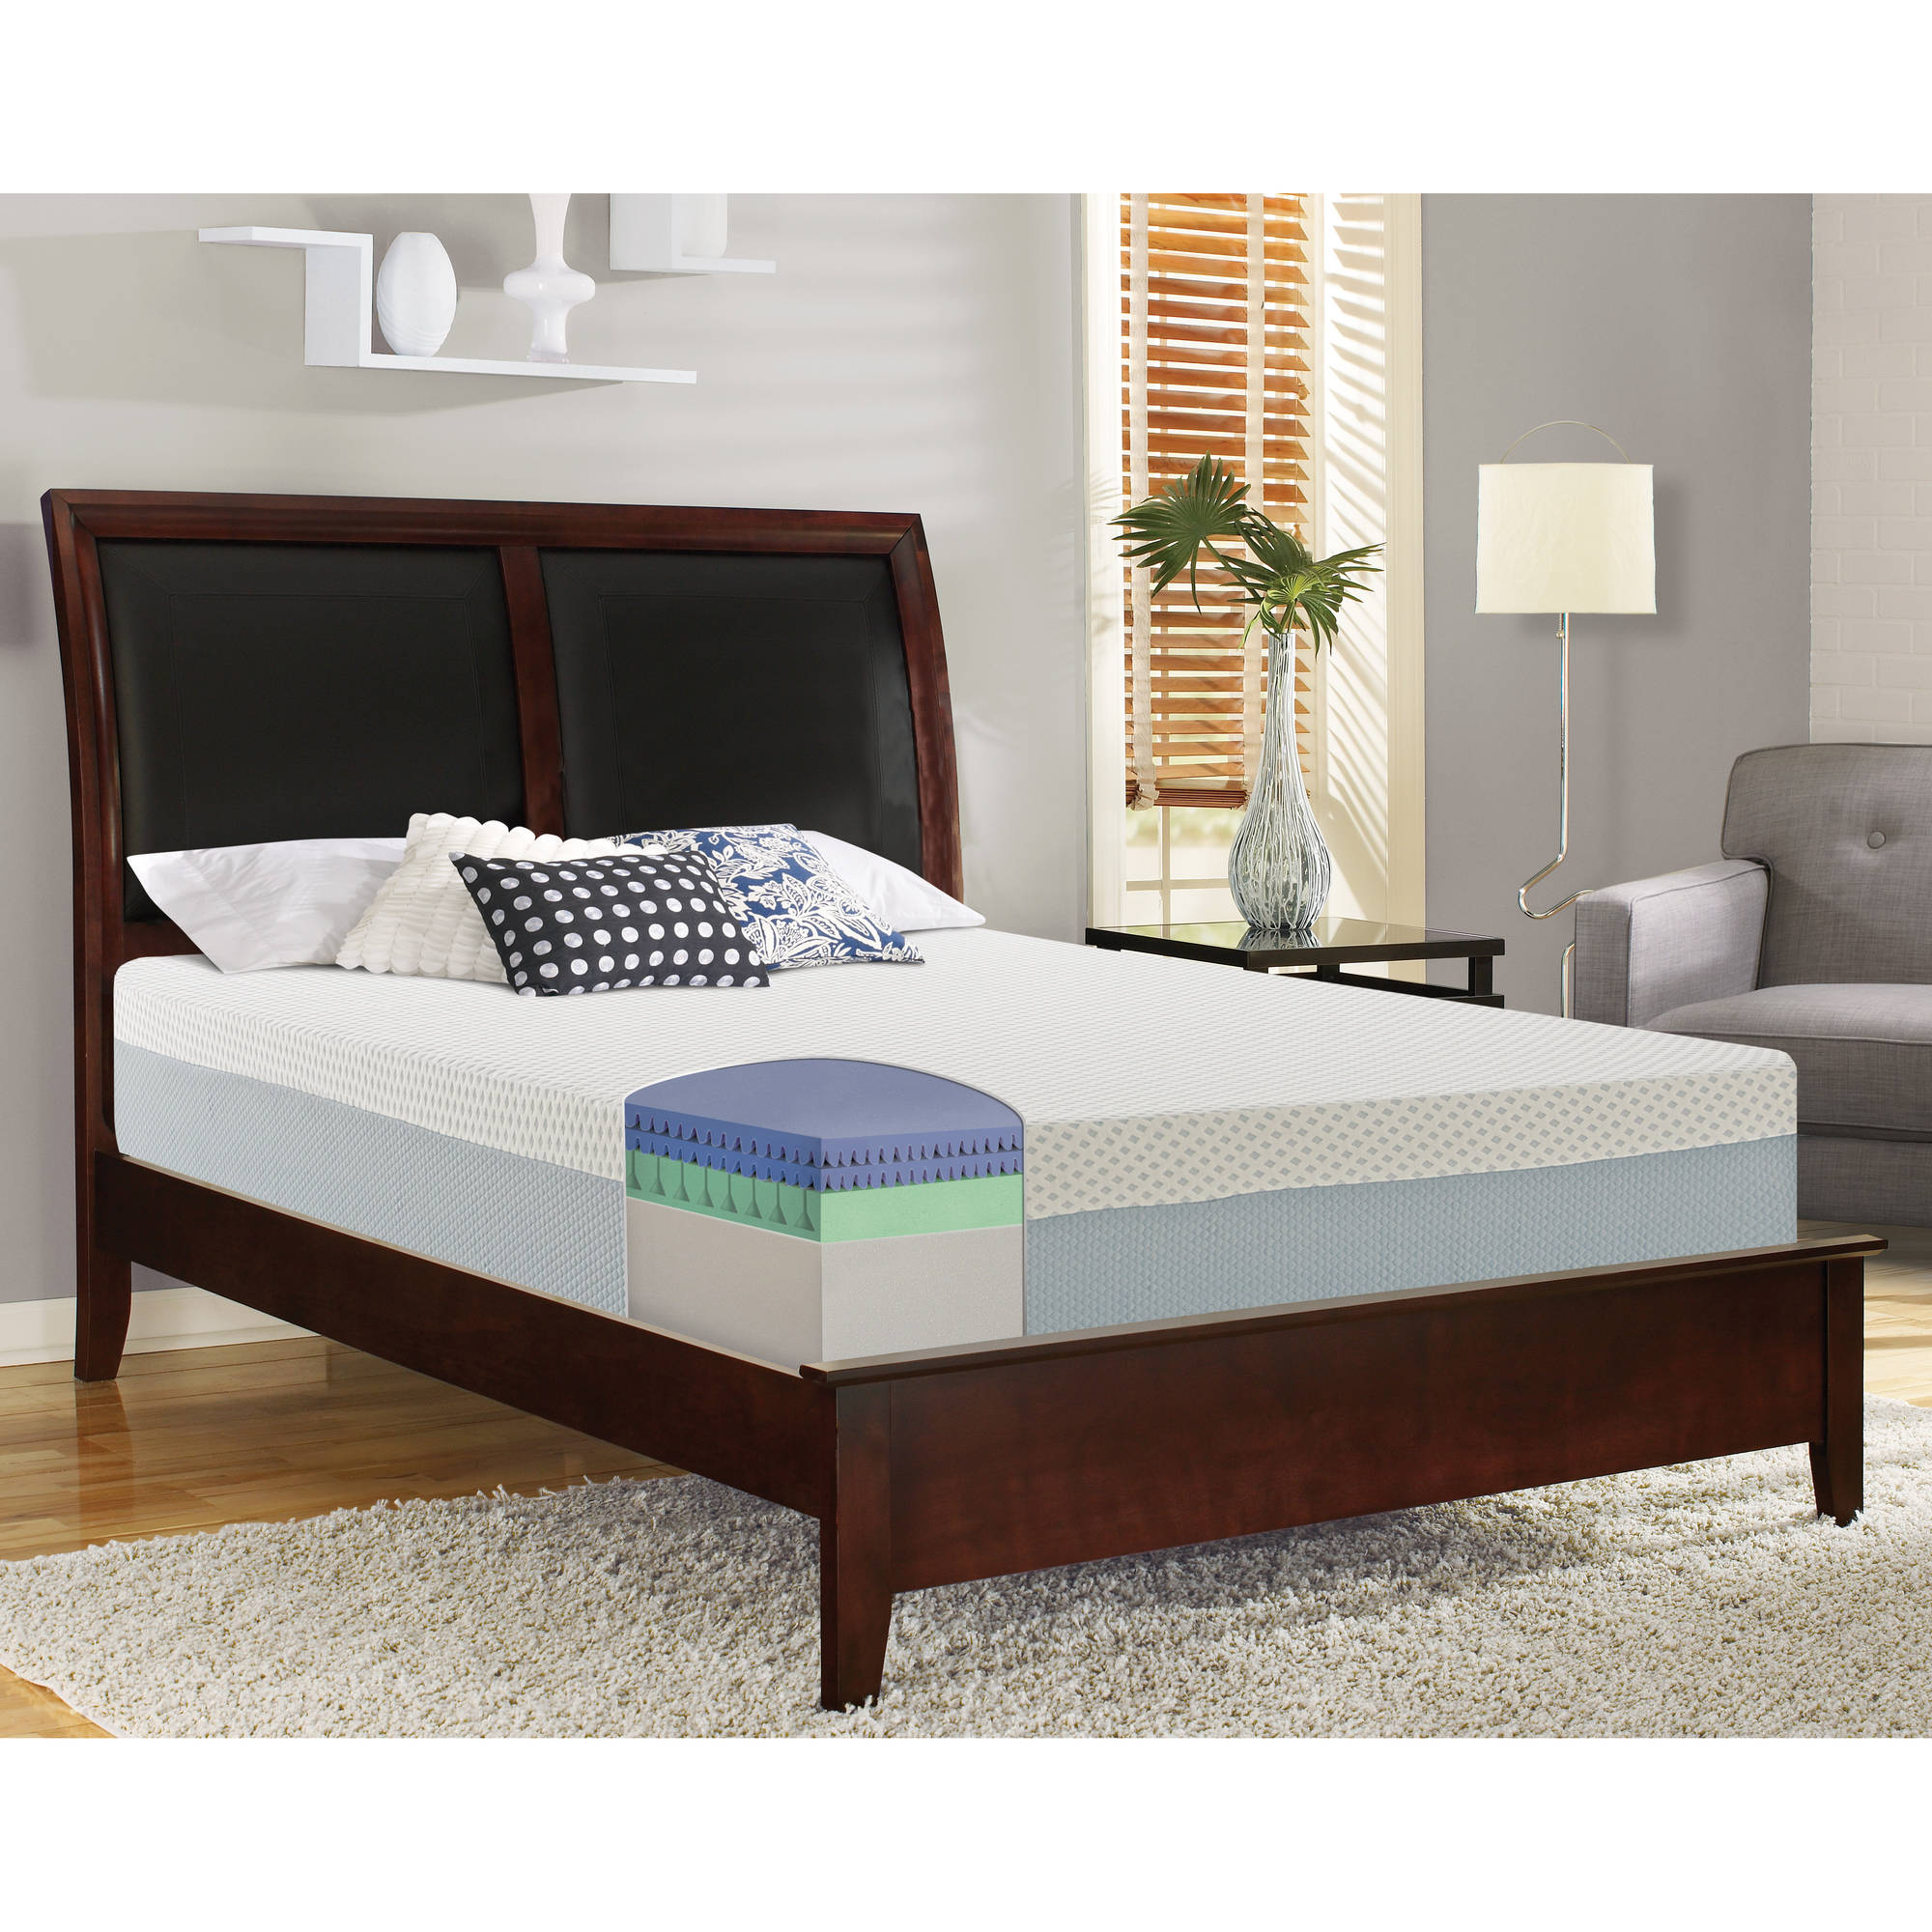 "Contura 2000 12""Medium Plush Engineered Latex Mattress Bed, Multiple sizes by Boyd Flotation"